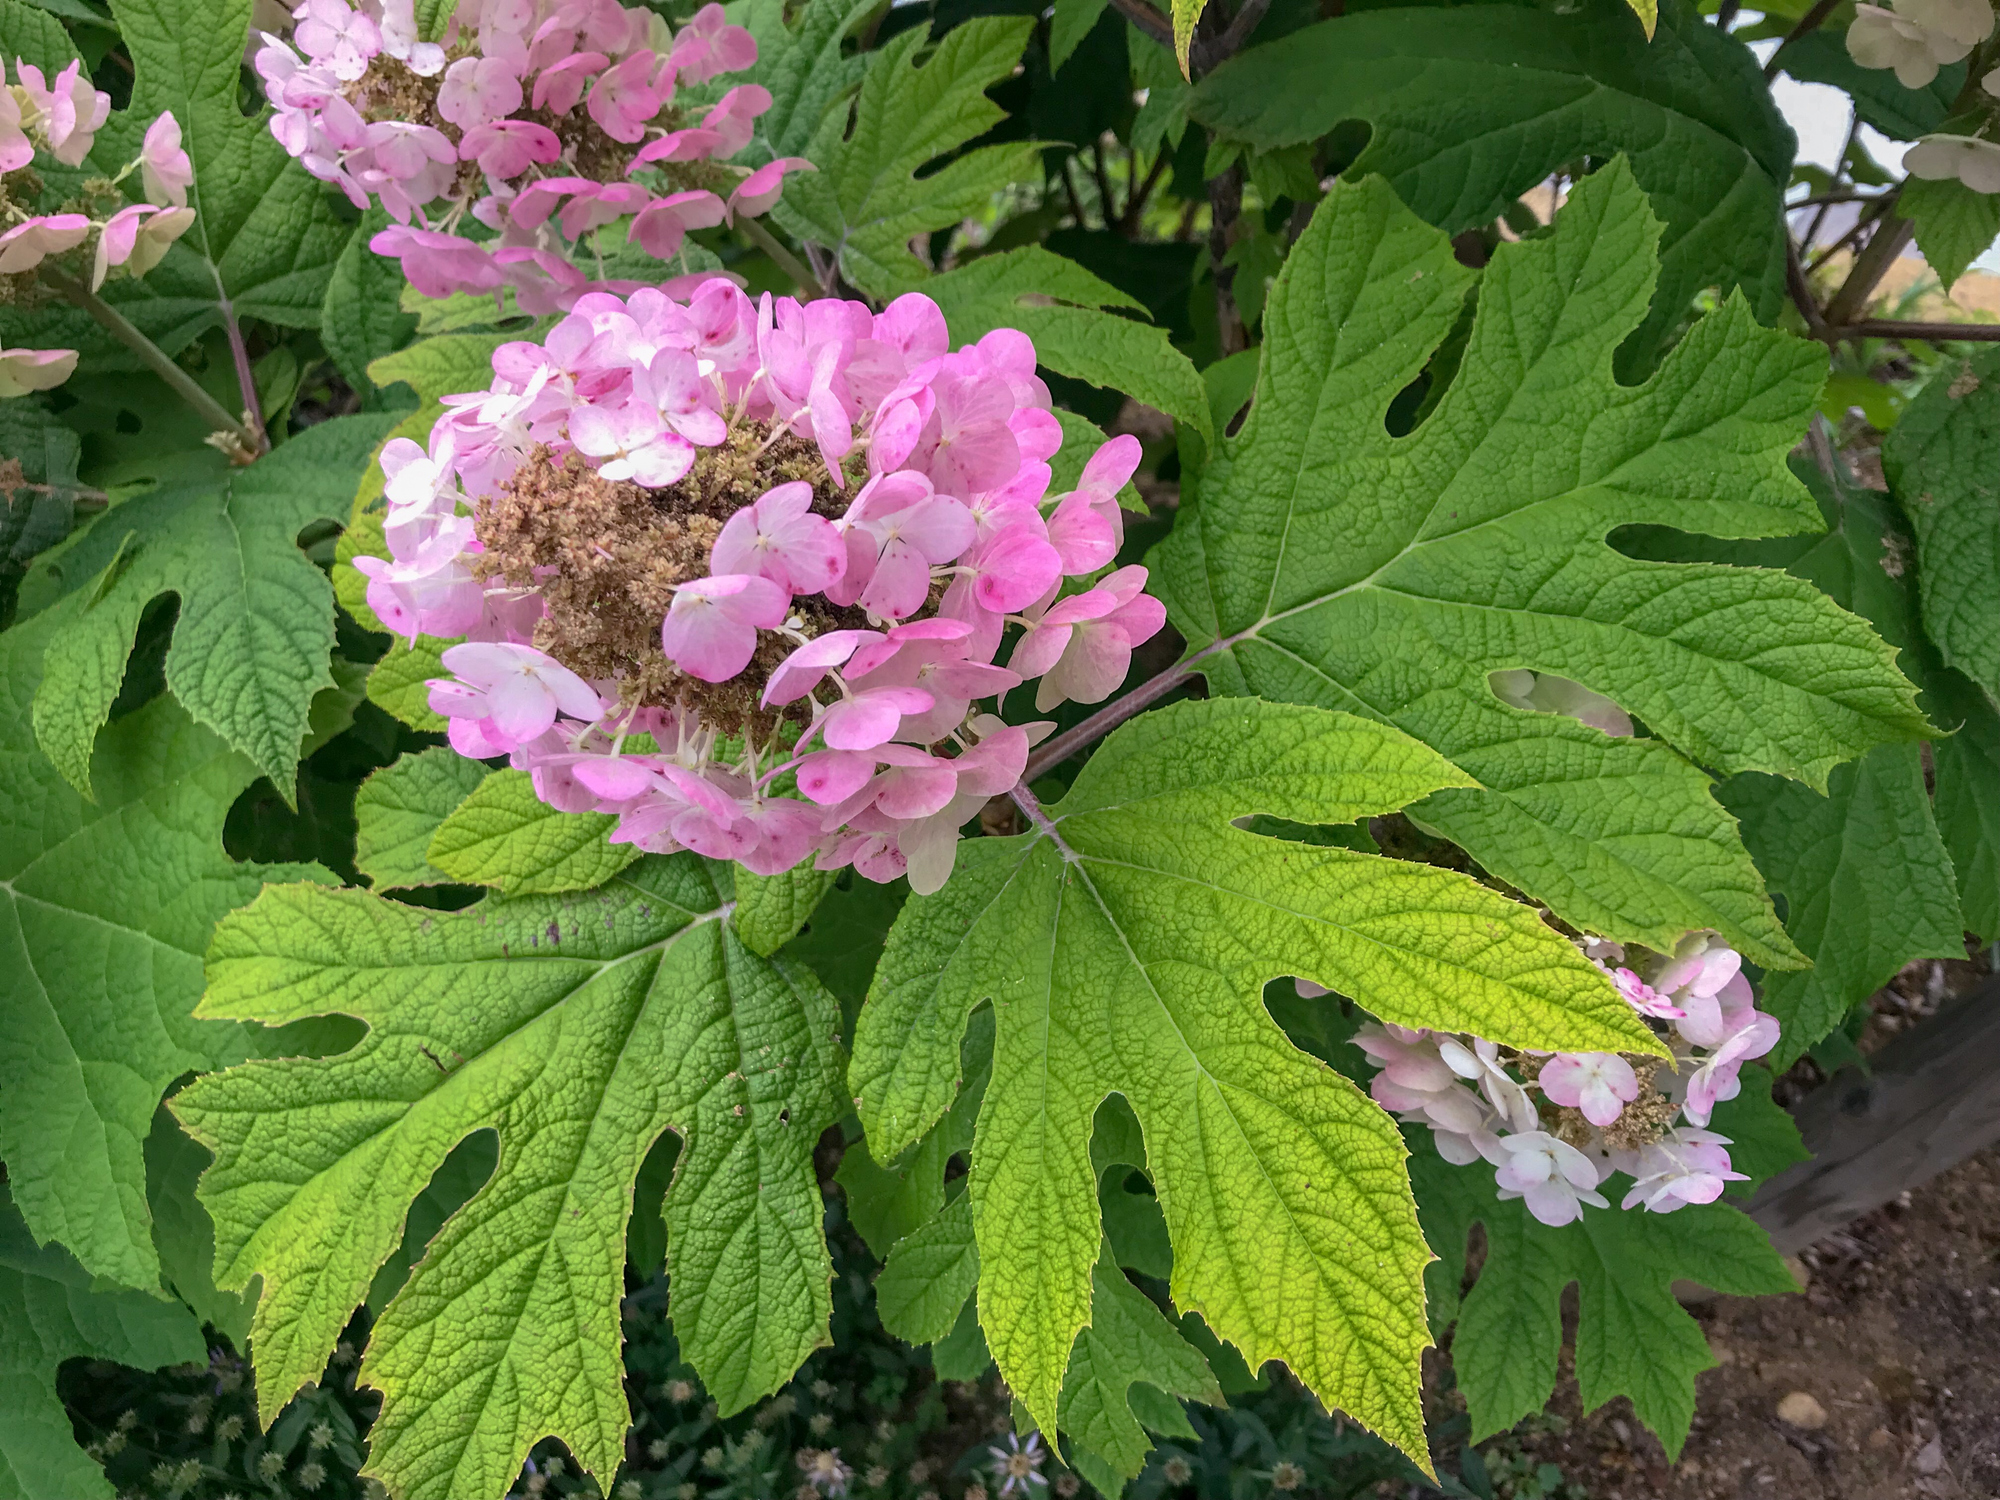 Plant 'Ruby Slippers' Hydrangea for Dramatic Colored Blooms